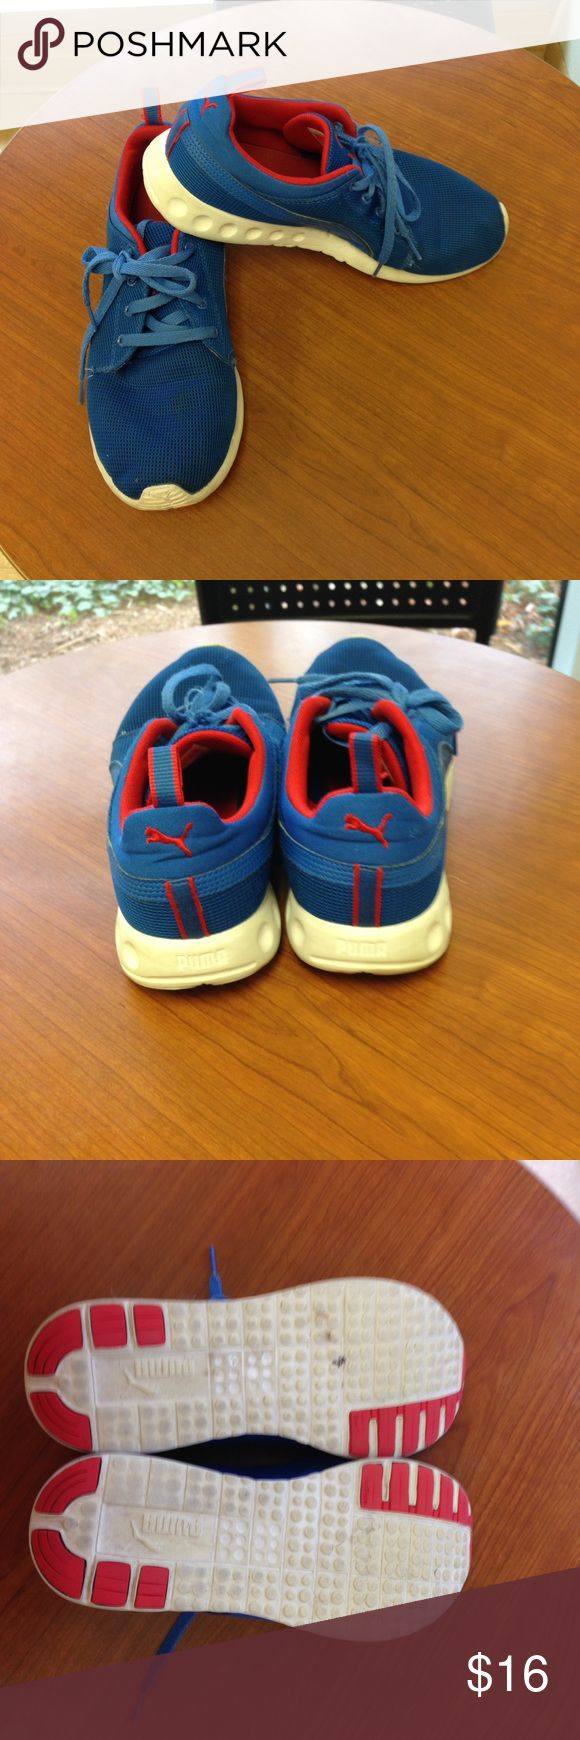 Men's Puma sneakers Gently used Puma. Puma Shoes Sneakers